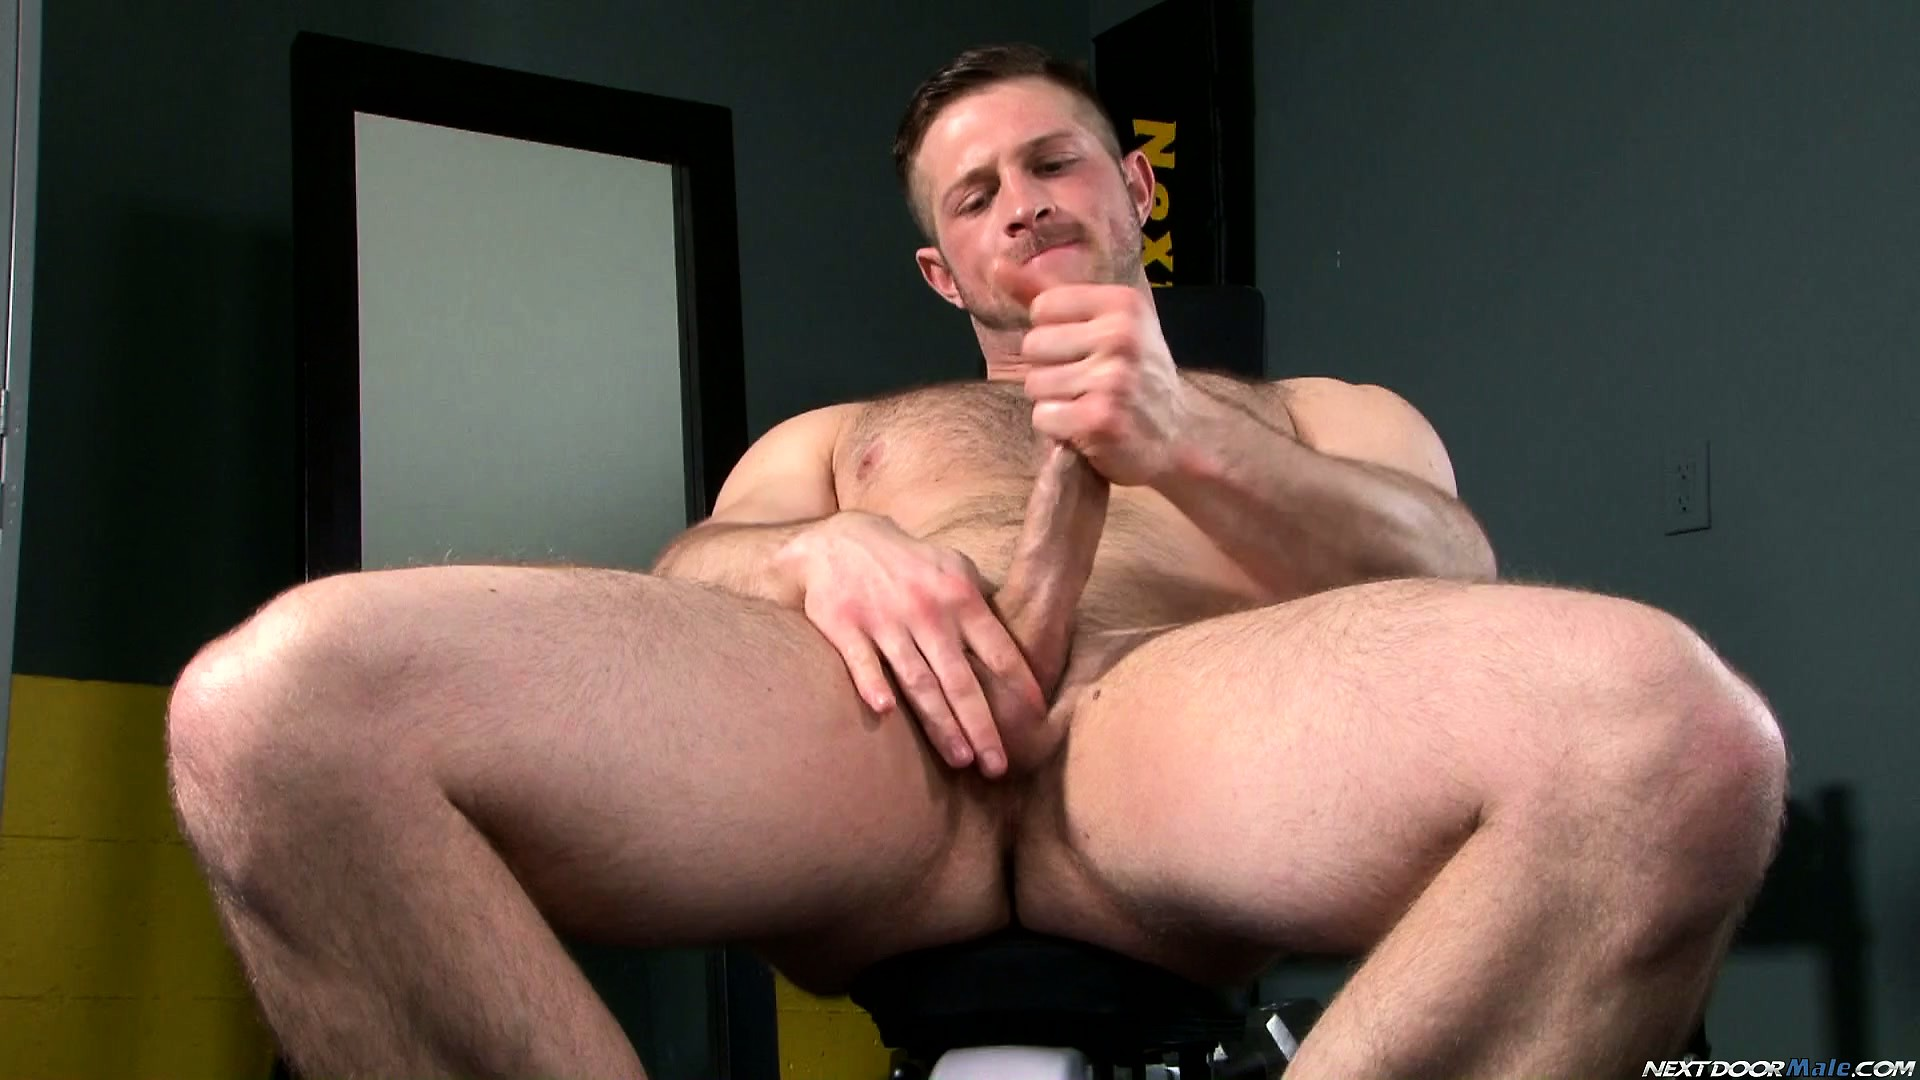 Porn Tube of Paul Wagner Takes Off His Shorts Strokes His Cock And Fondles His Ass